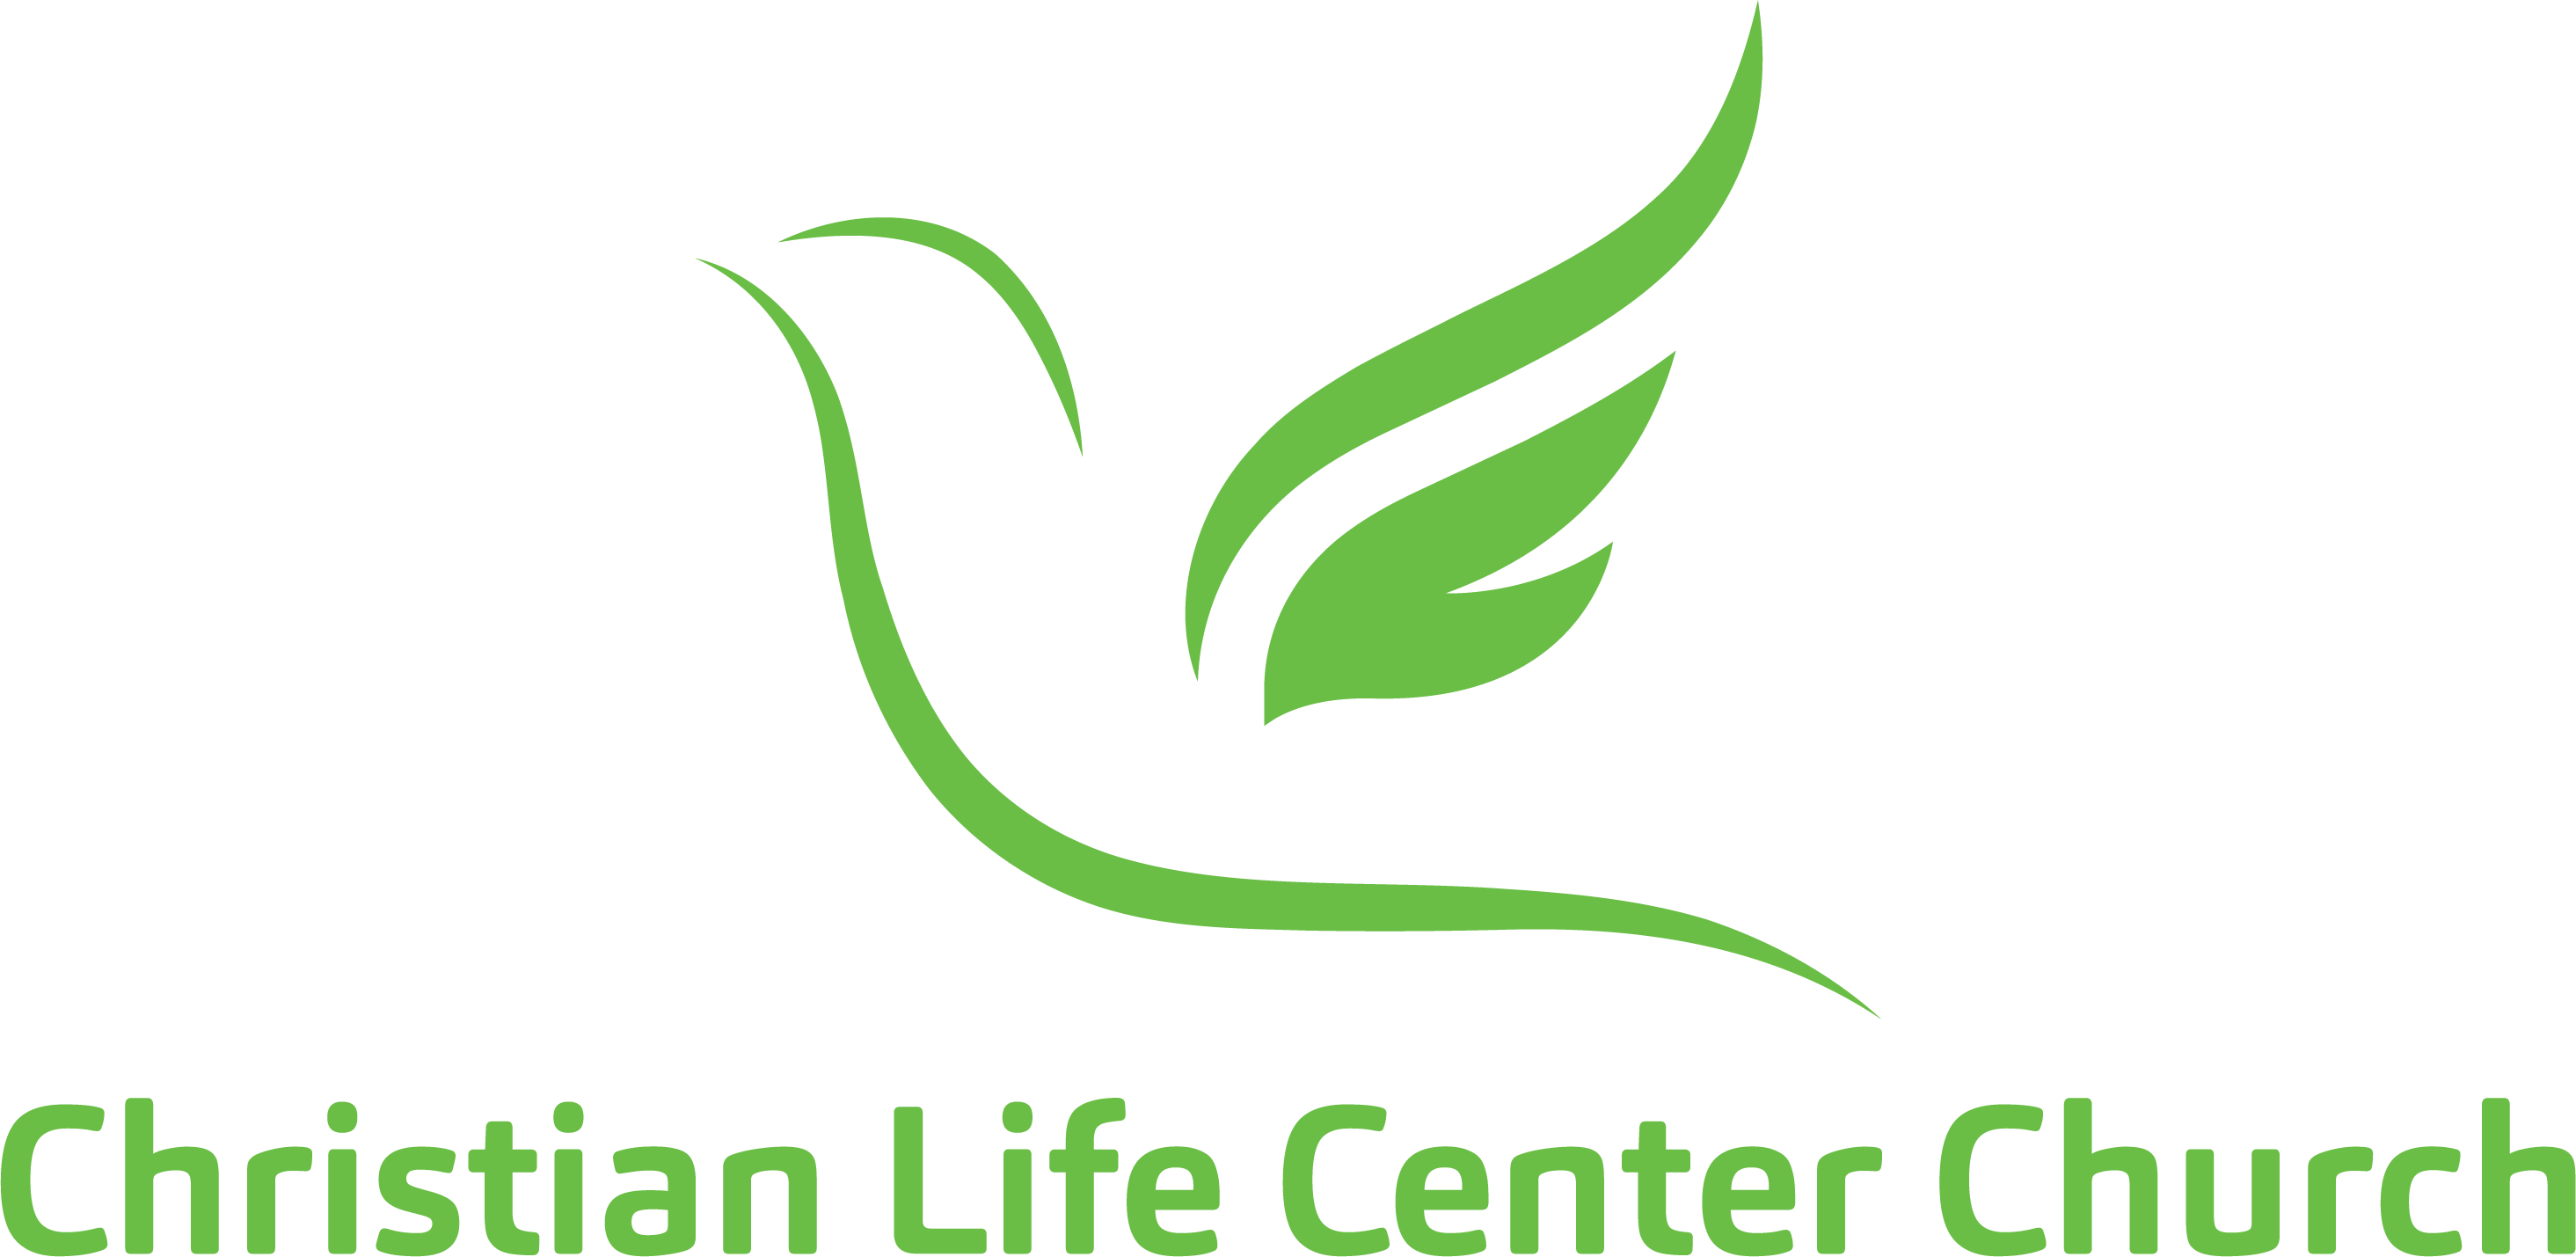 Christian Life Center Church - UPC